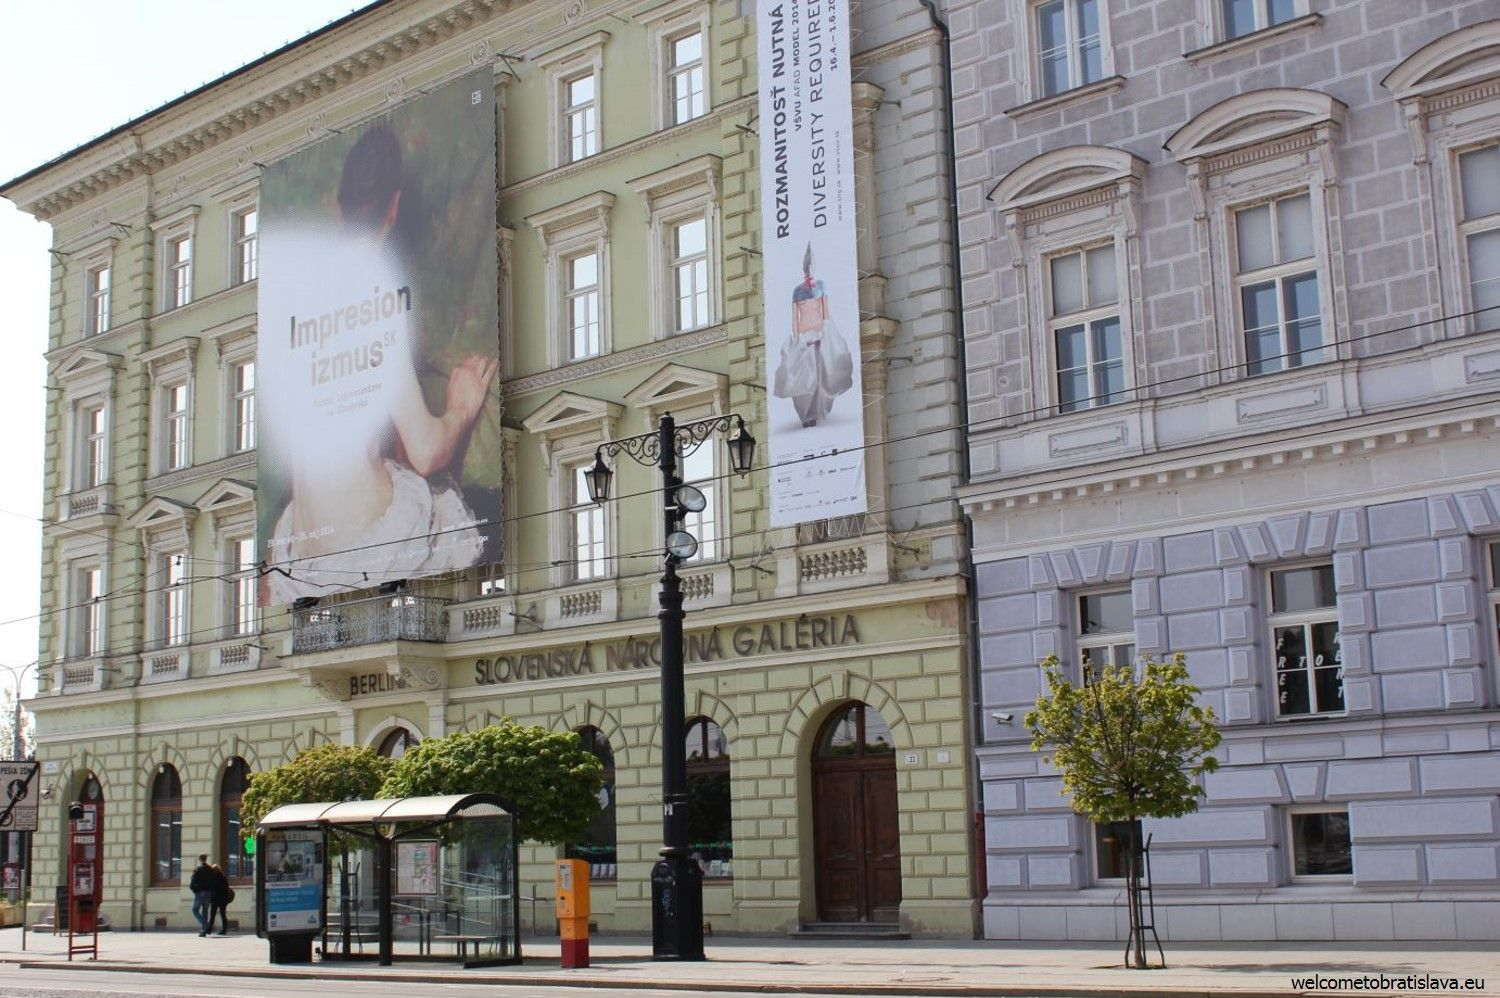 The Slovak National Gallery building